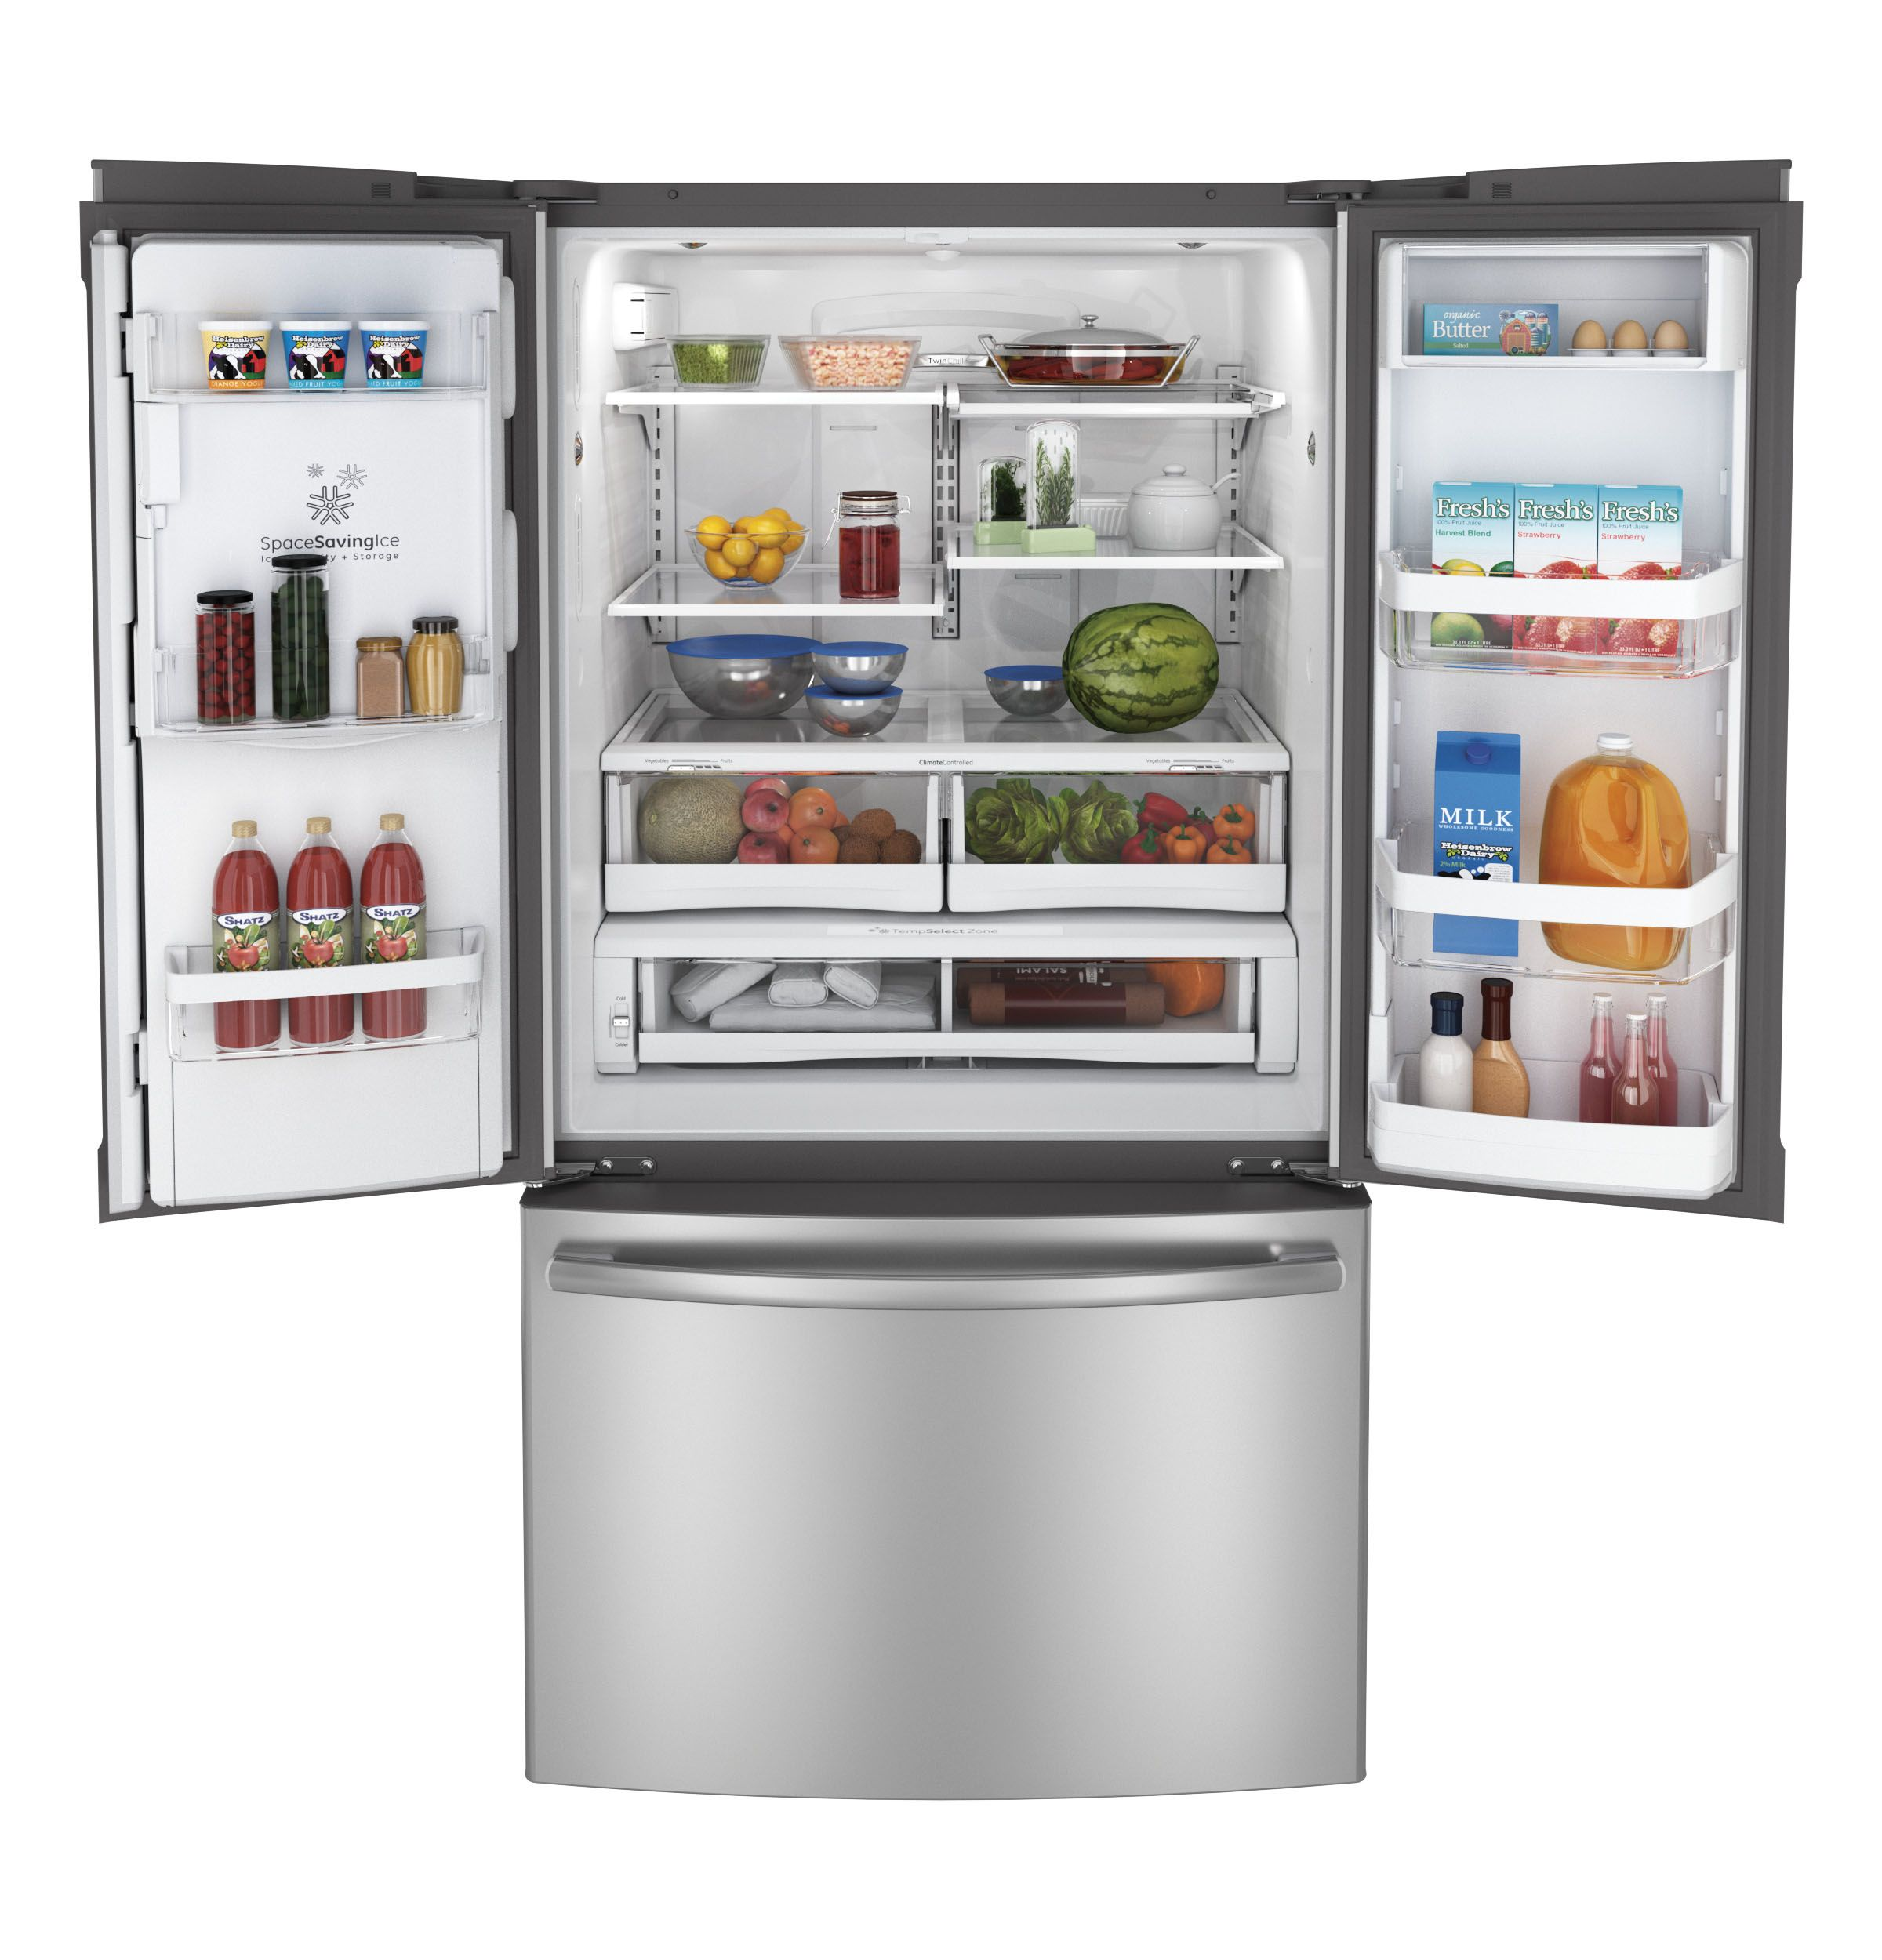 Energy Star Qualified Ge Refrigerators Sold In 2010 Are 20 Or 30